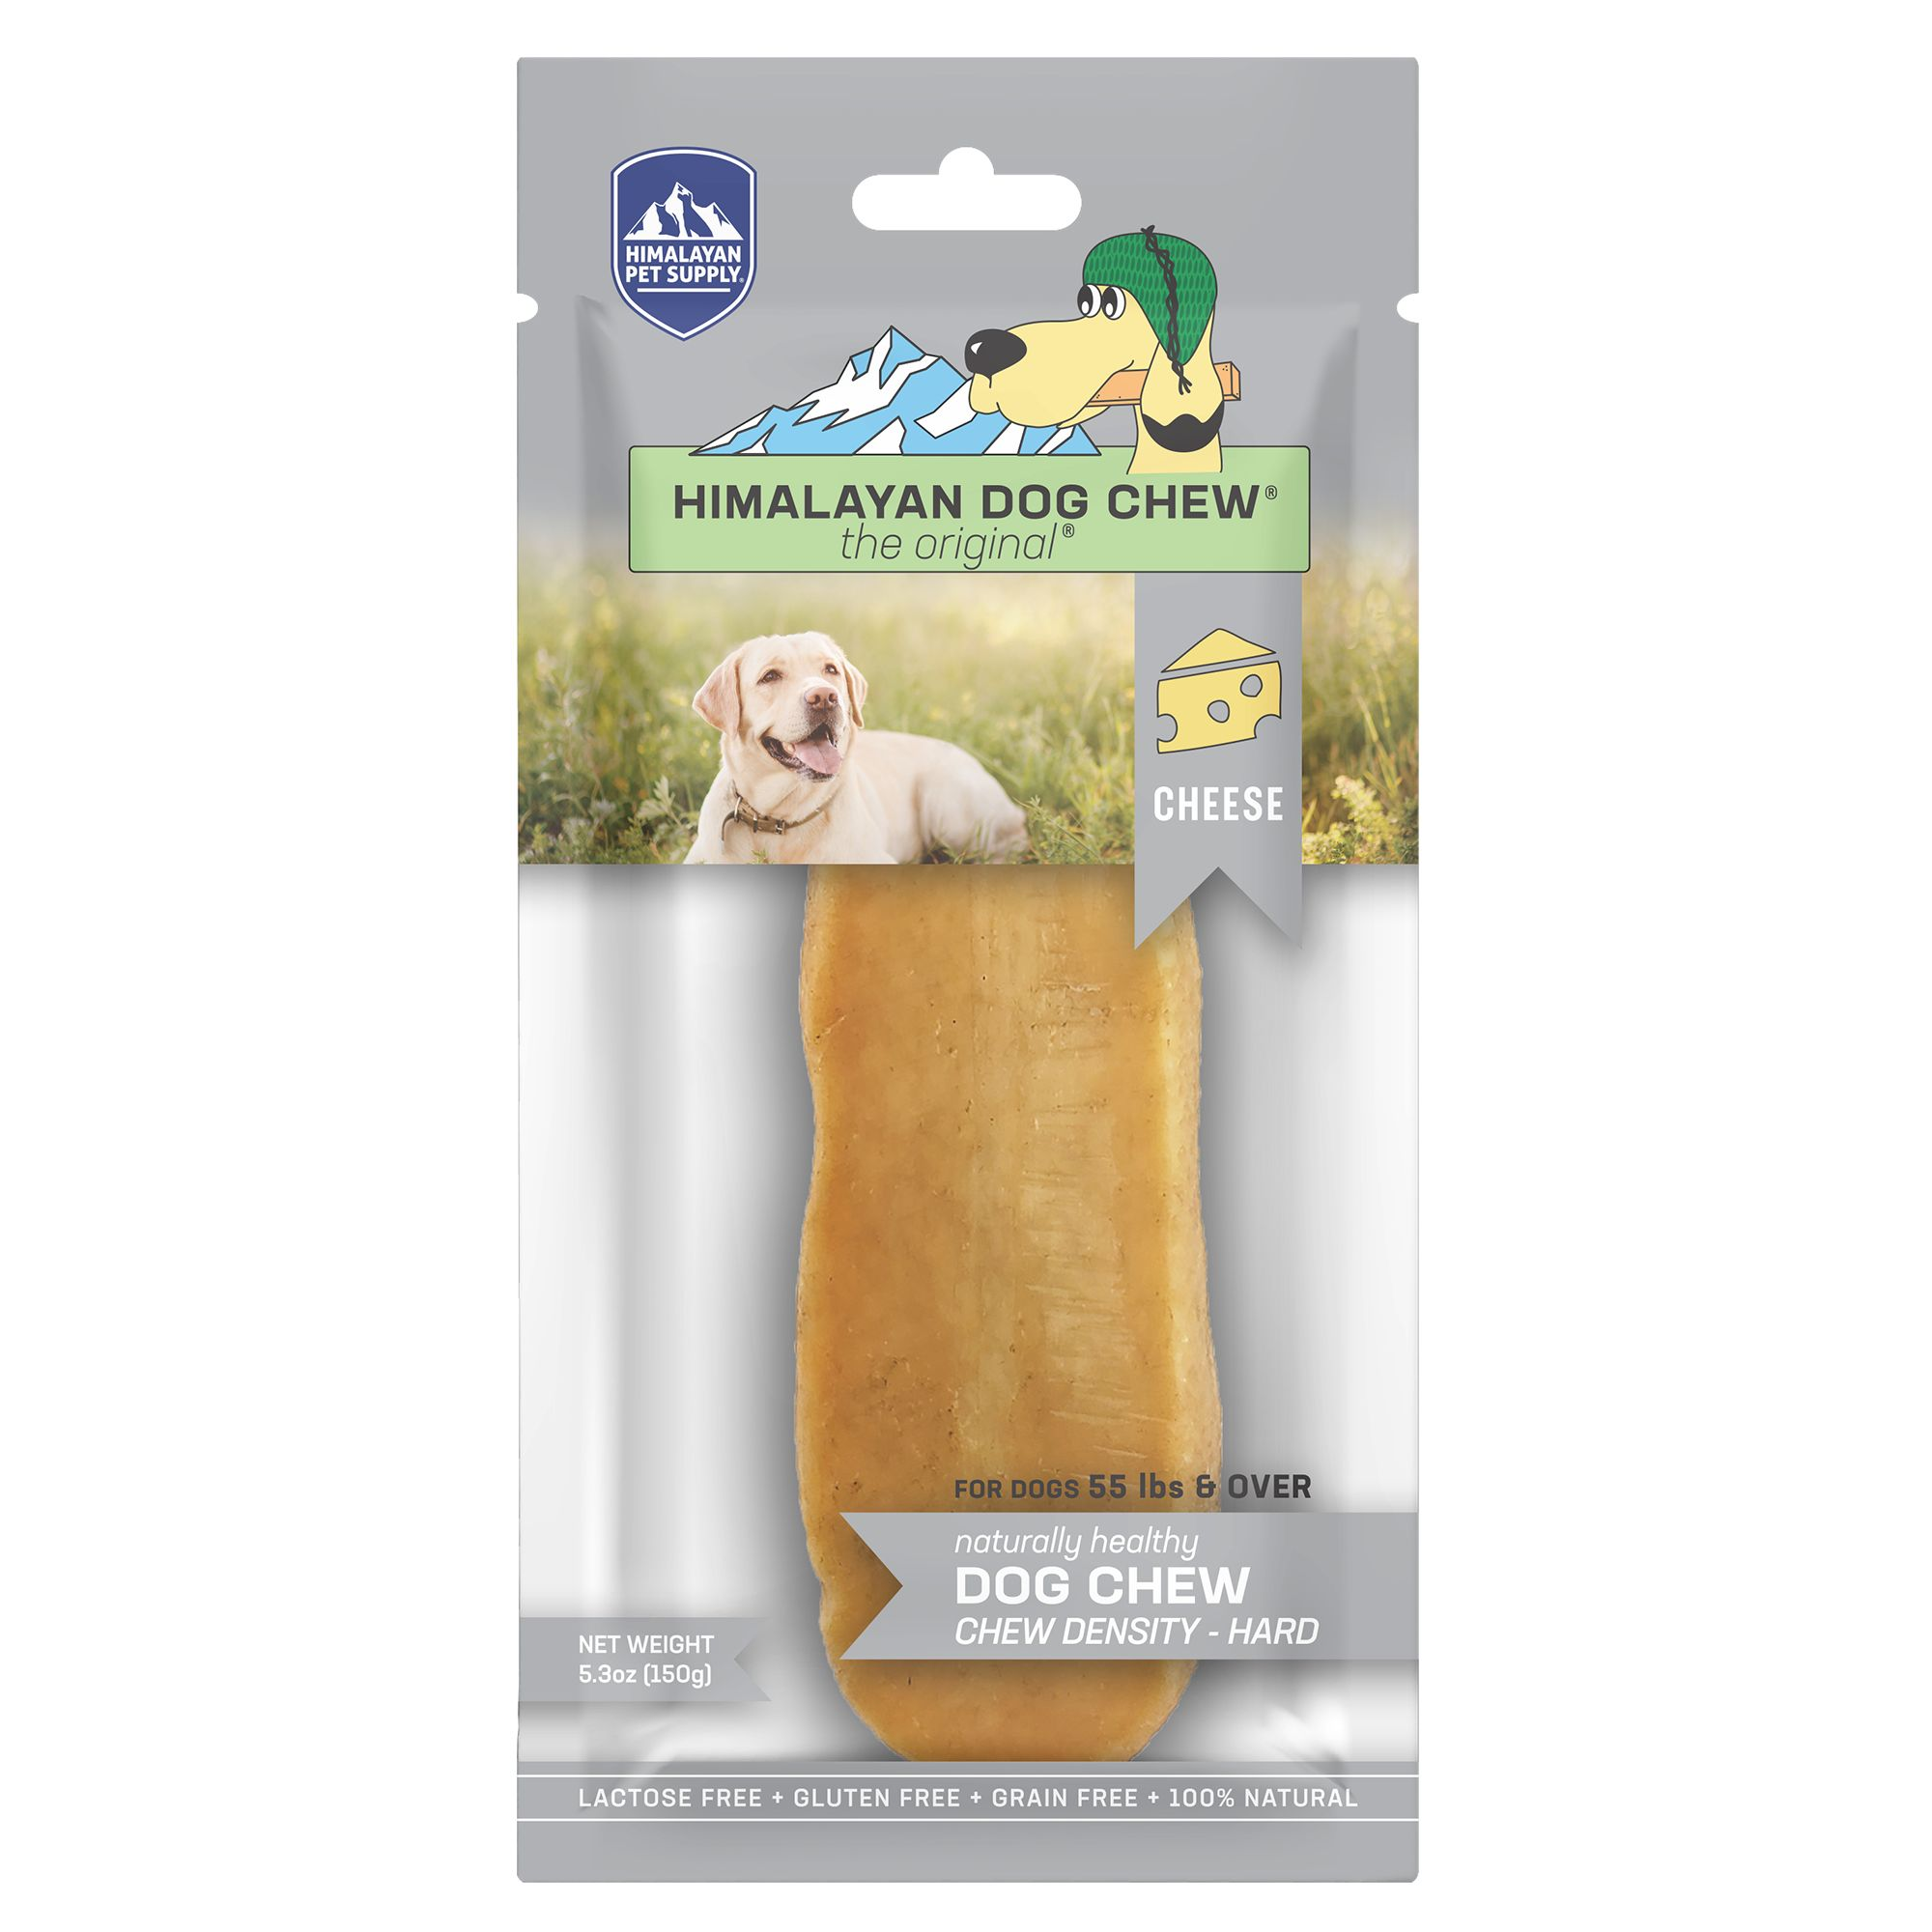 Himalayan Dog Chew The Original